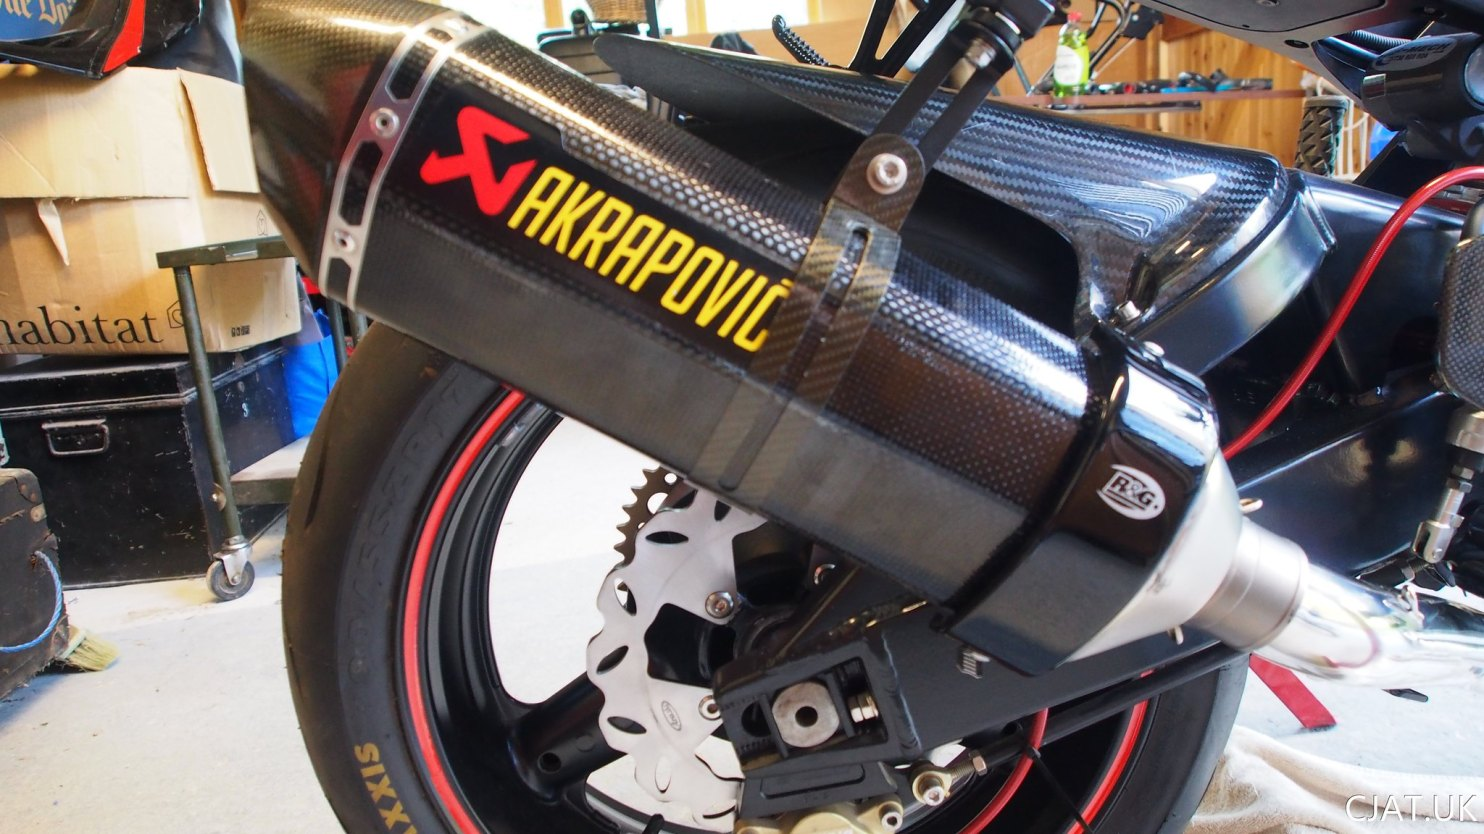 Suzuki RF900 StreetFighter akrapovic exhaust